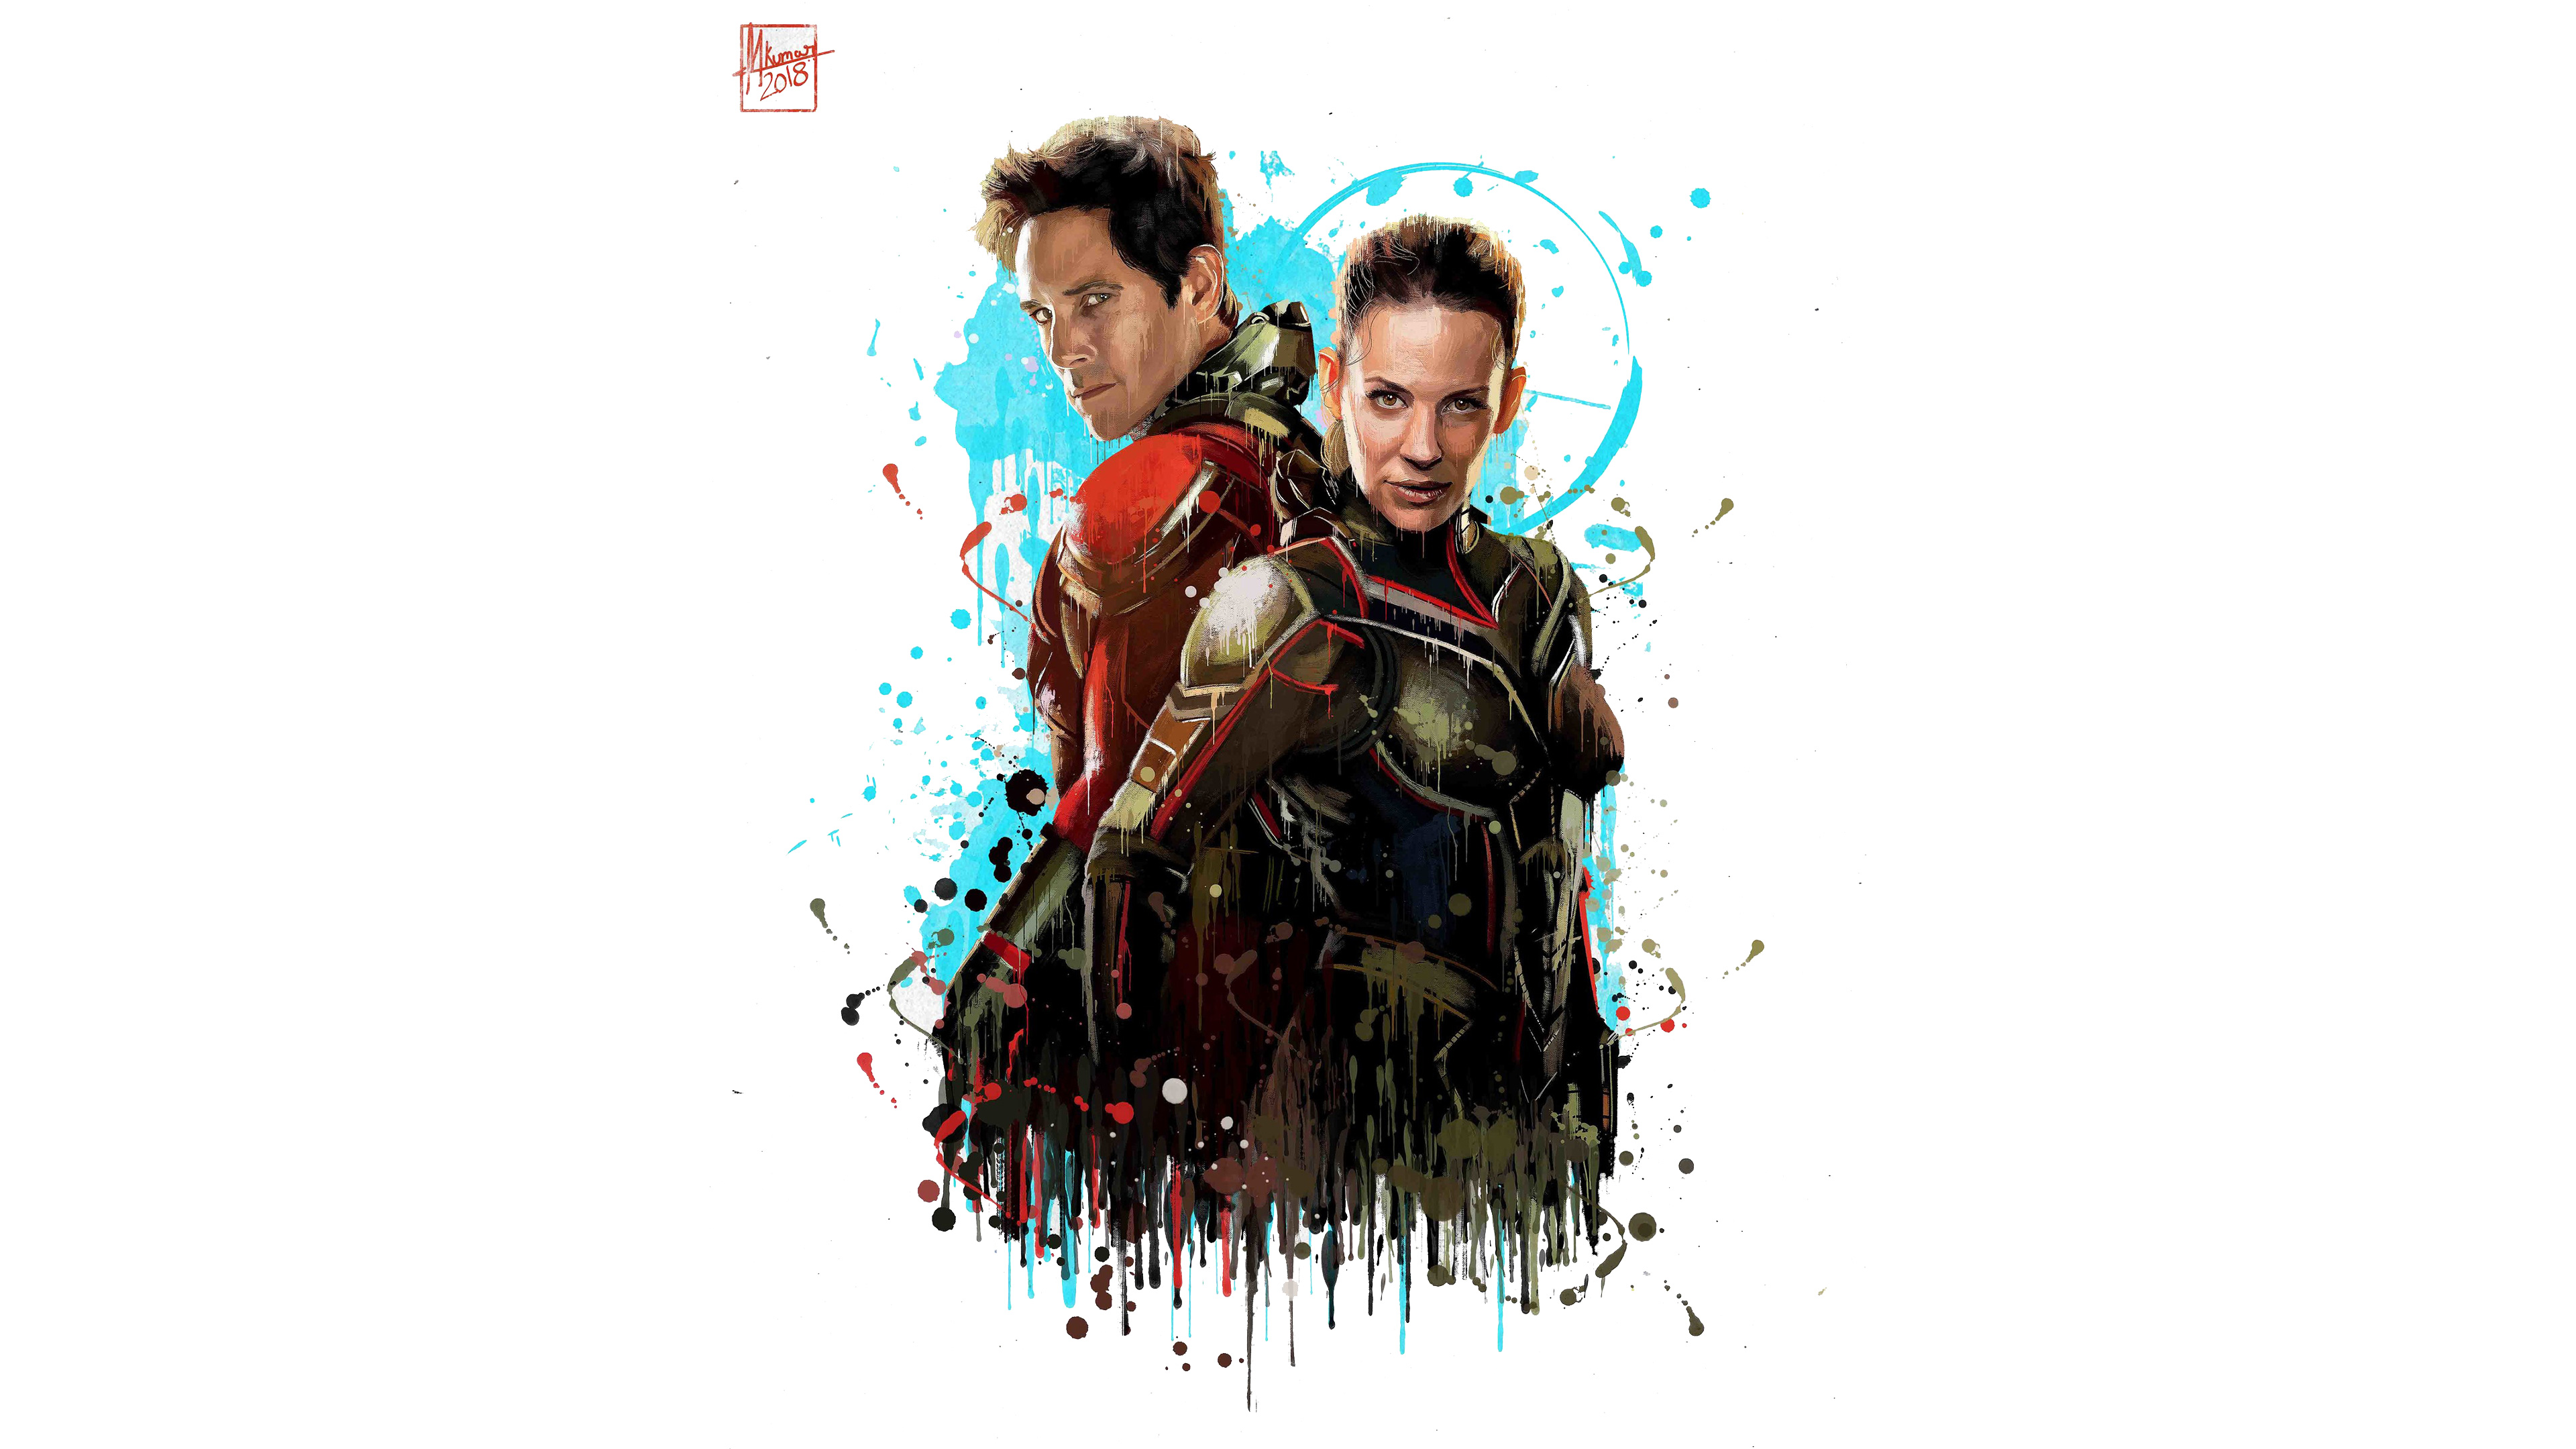 antman and the wasp splash art 1537644900 - Antman And The Wasp Splash Art - wasp wallpapers, movies wallpapers, hd-wallpapers, digital art wallpapers, artstation wallpapers, artist wallpapers, ant man wallpapers, ant man and the wasp wallpapers, 4k-wallpapers, 2018-movies-wallpapers